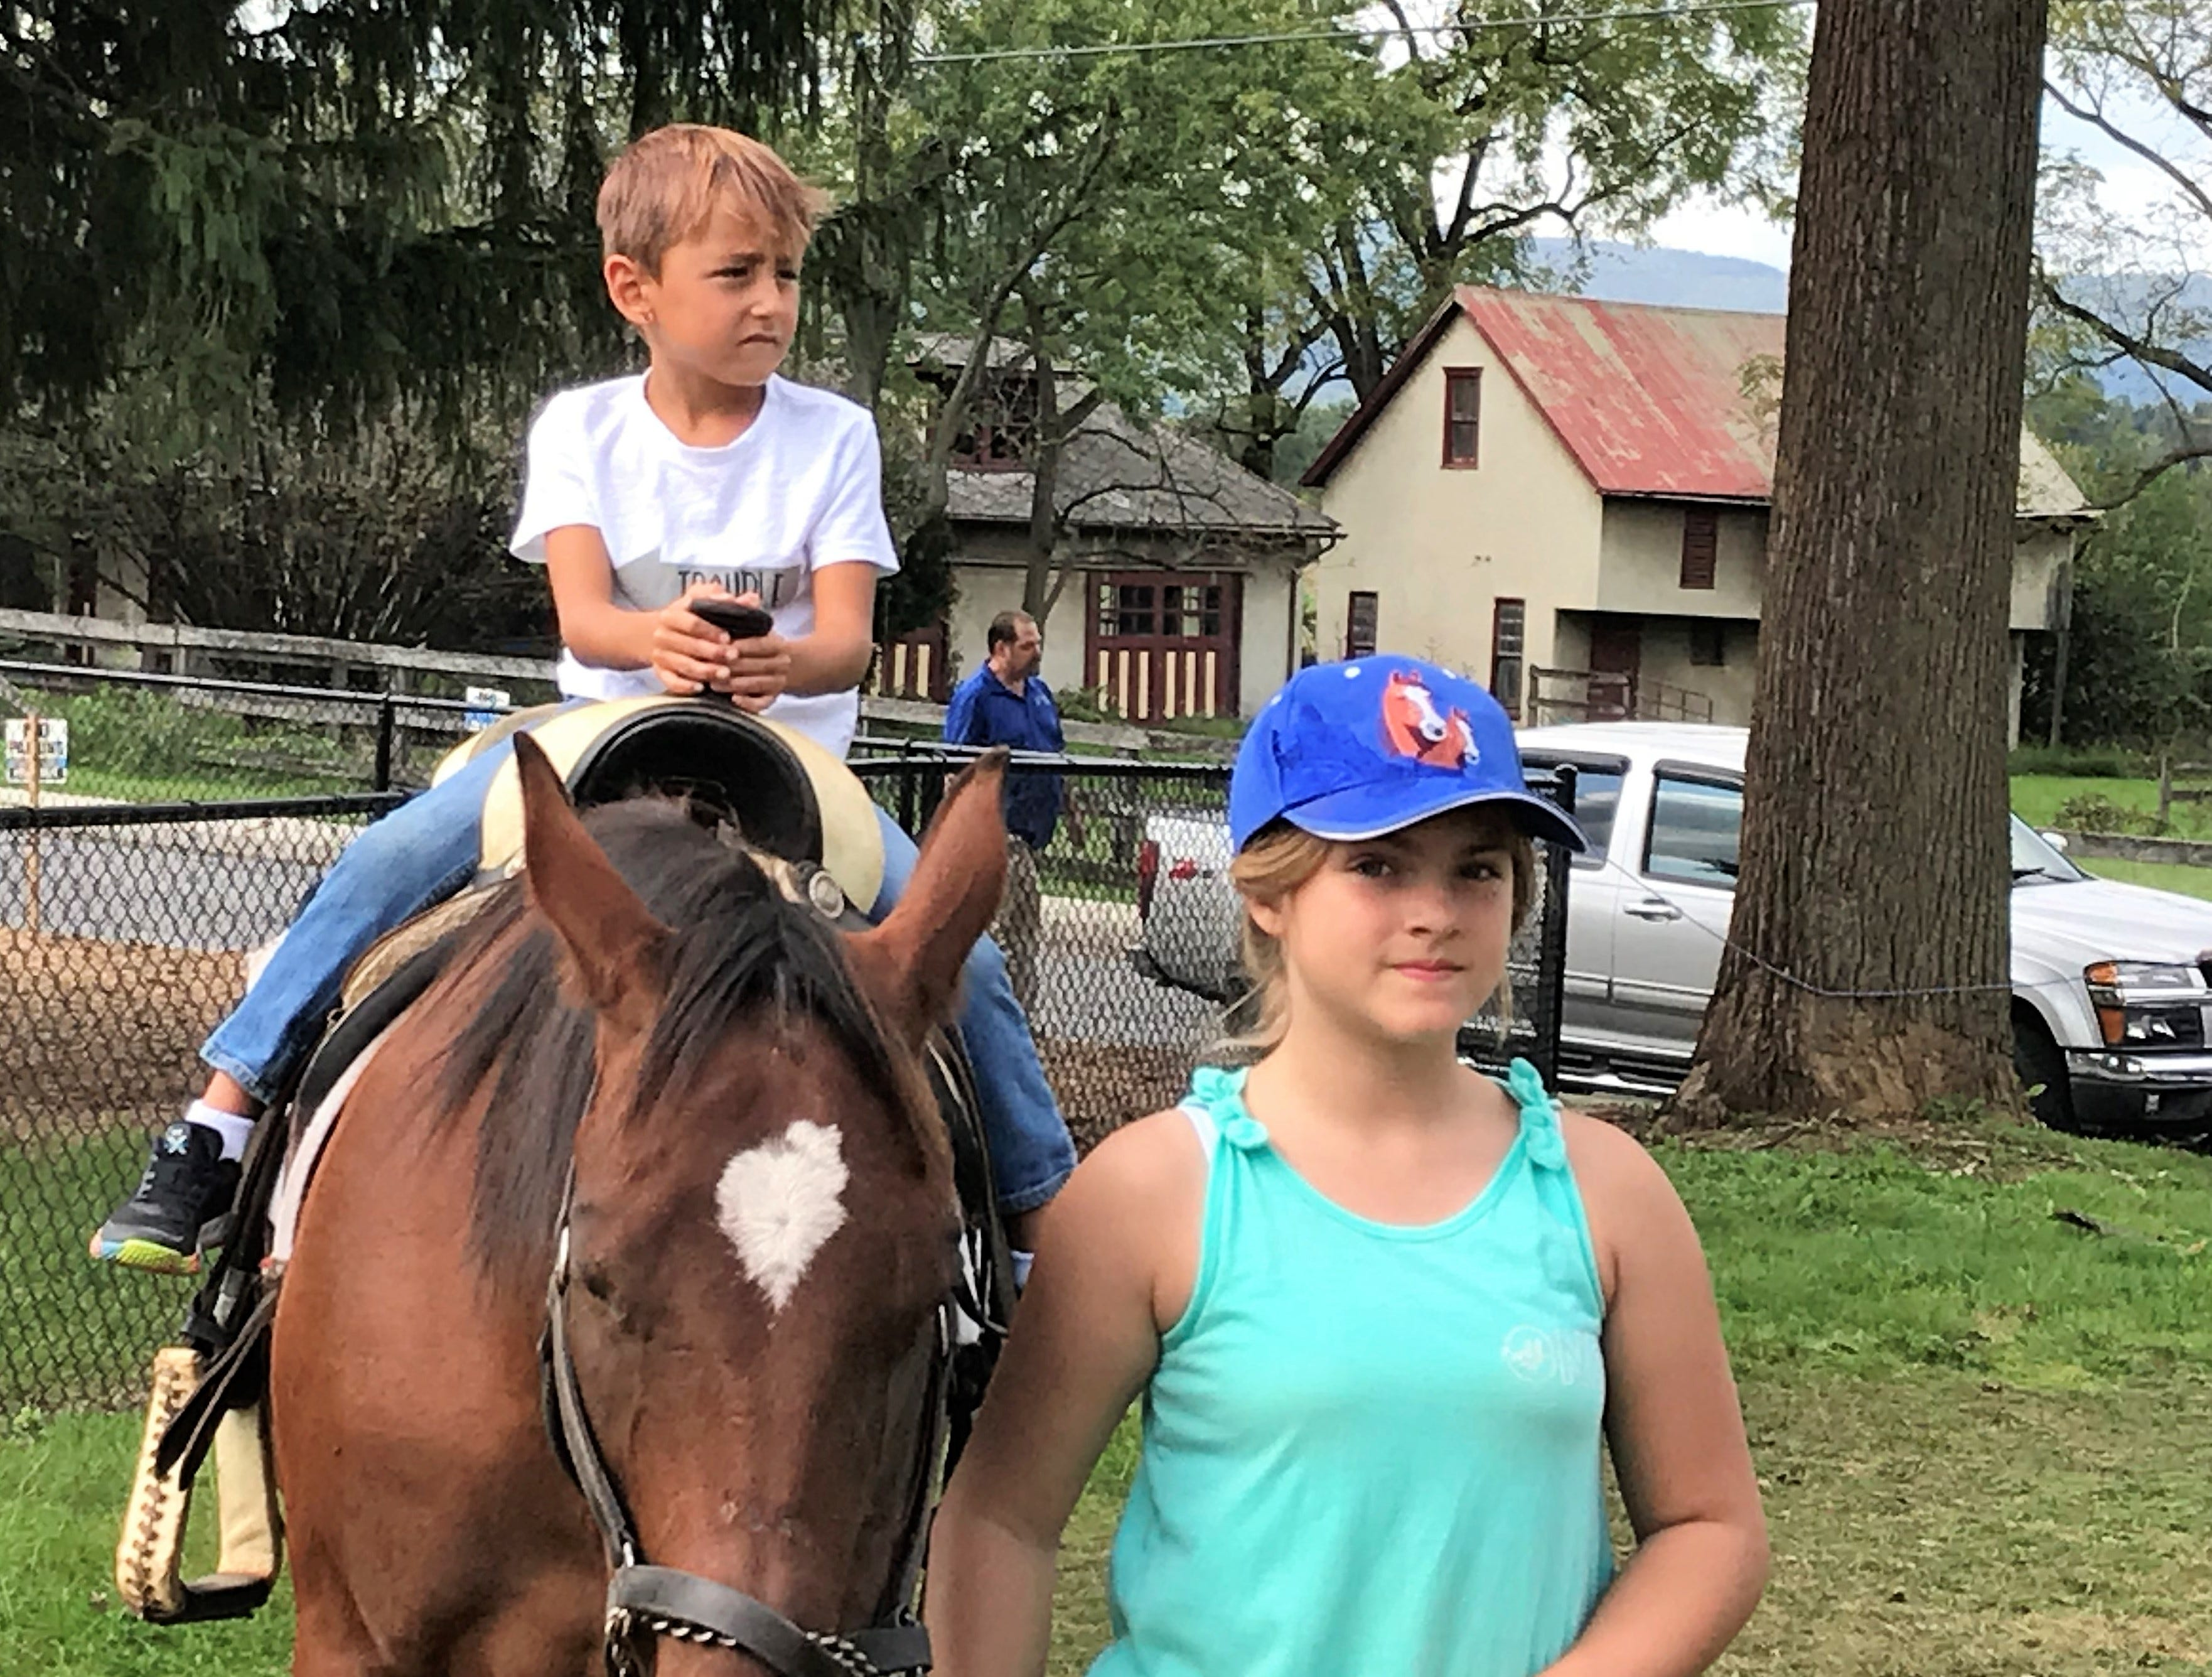 Connor Cook, Fort Loudon, rides a horse on Saturday, Sept. 29, 2018, at Mercersburg Townfest.